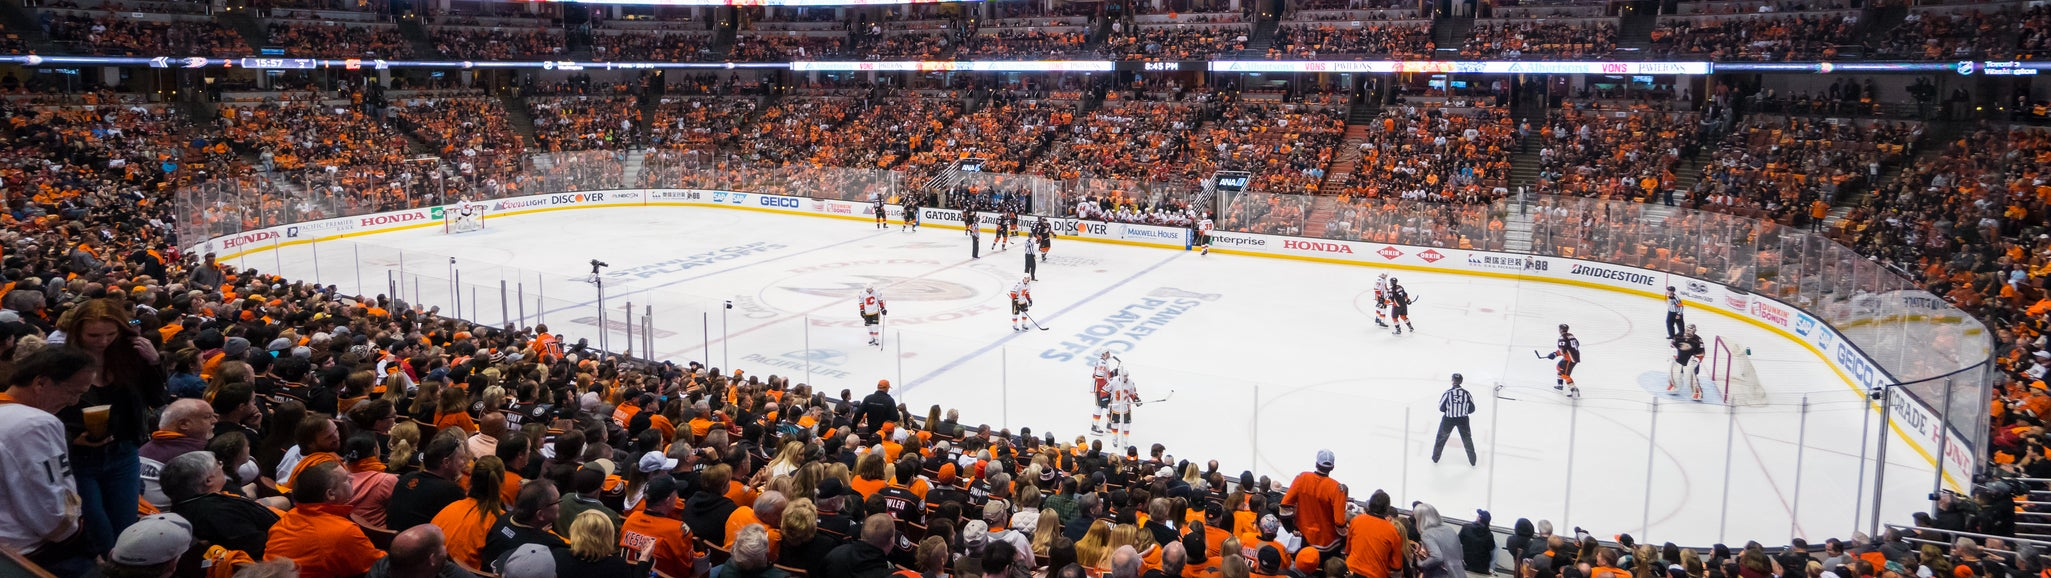 Seat view from Rinkside Center